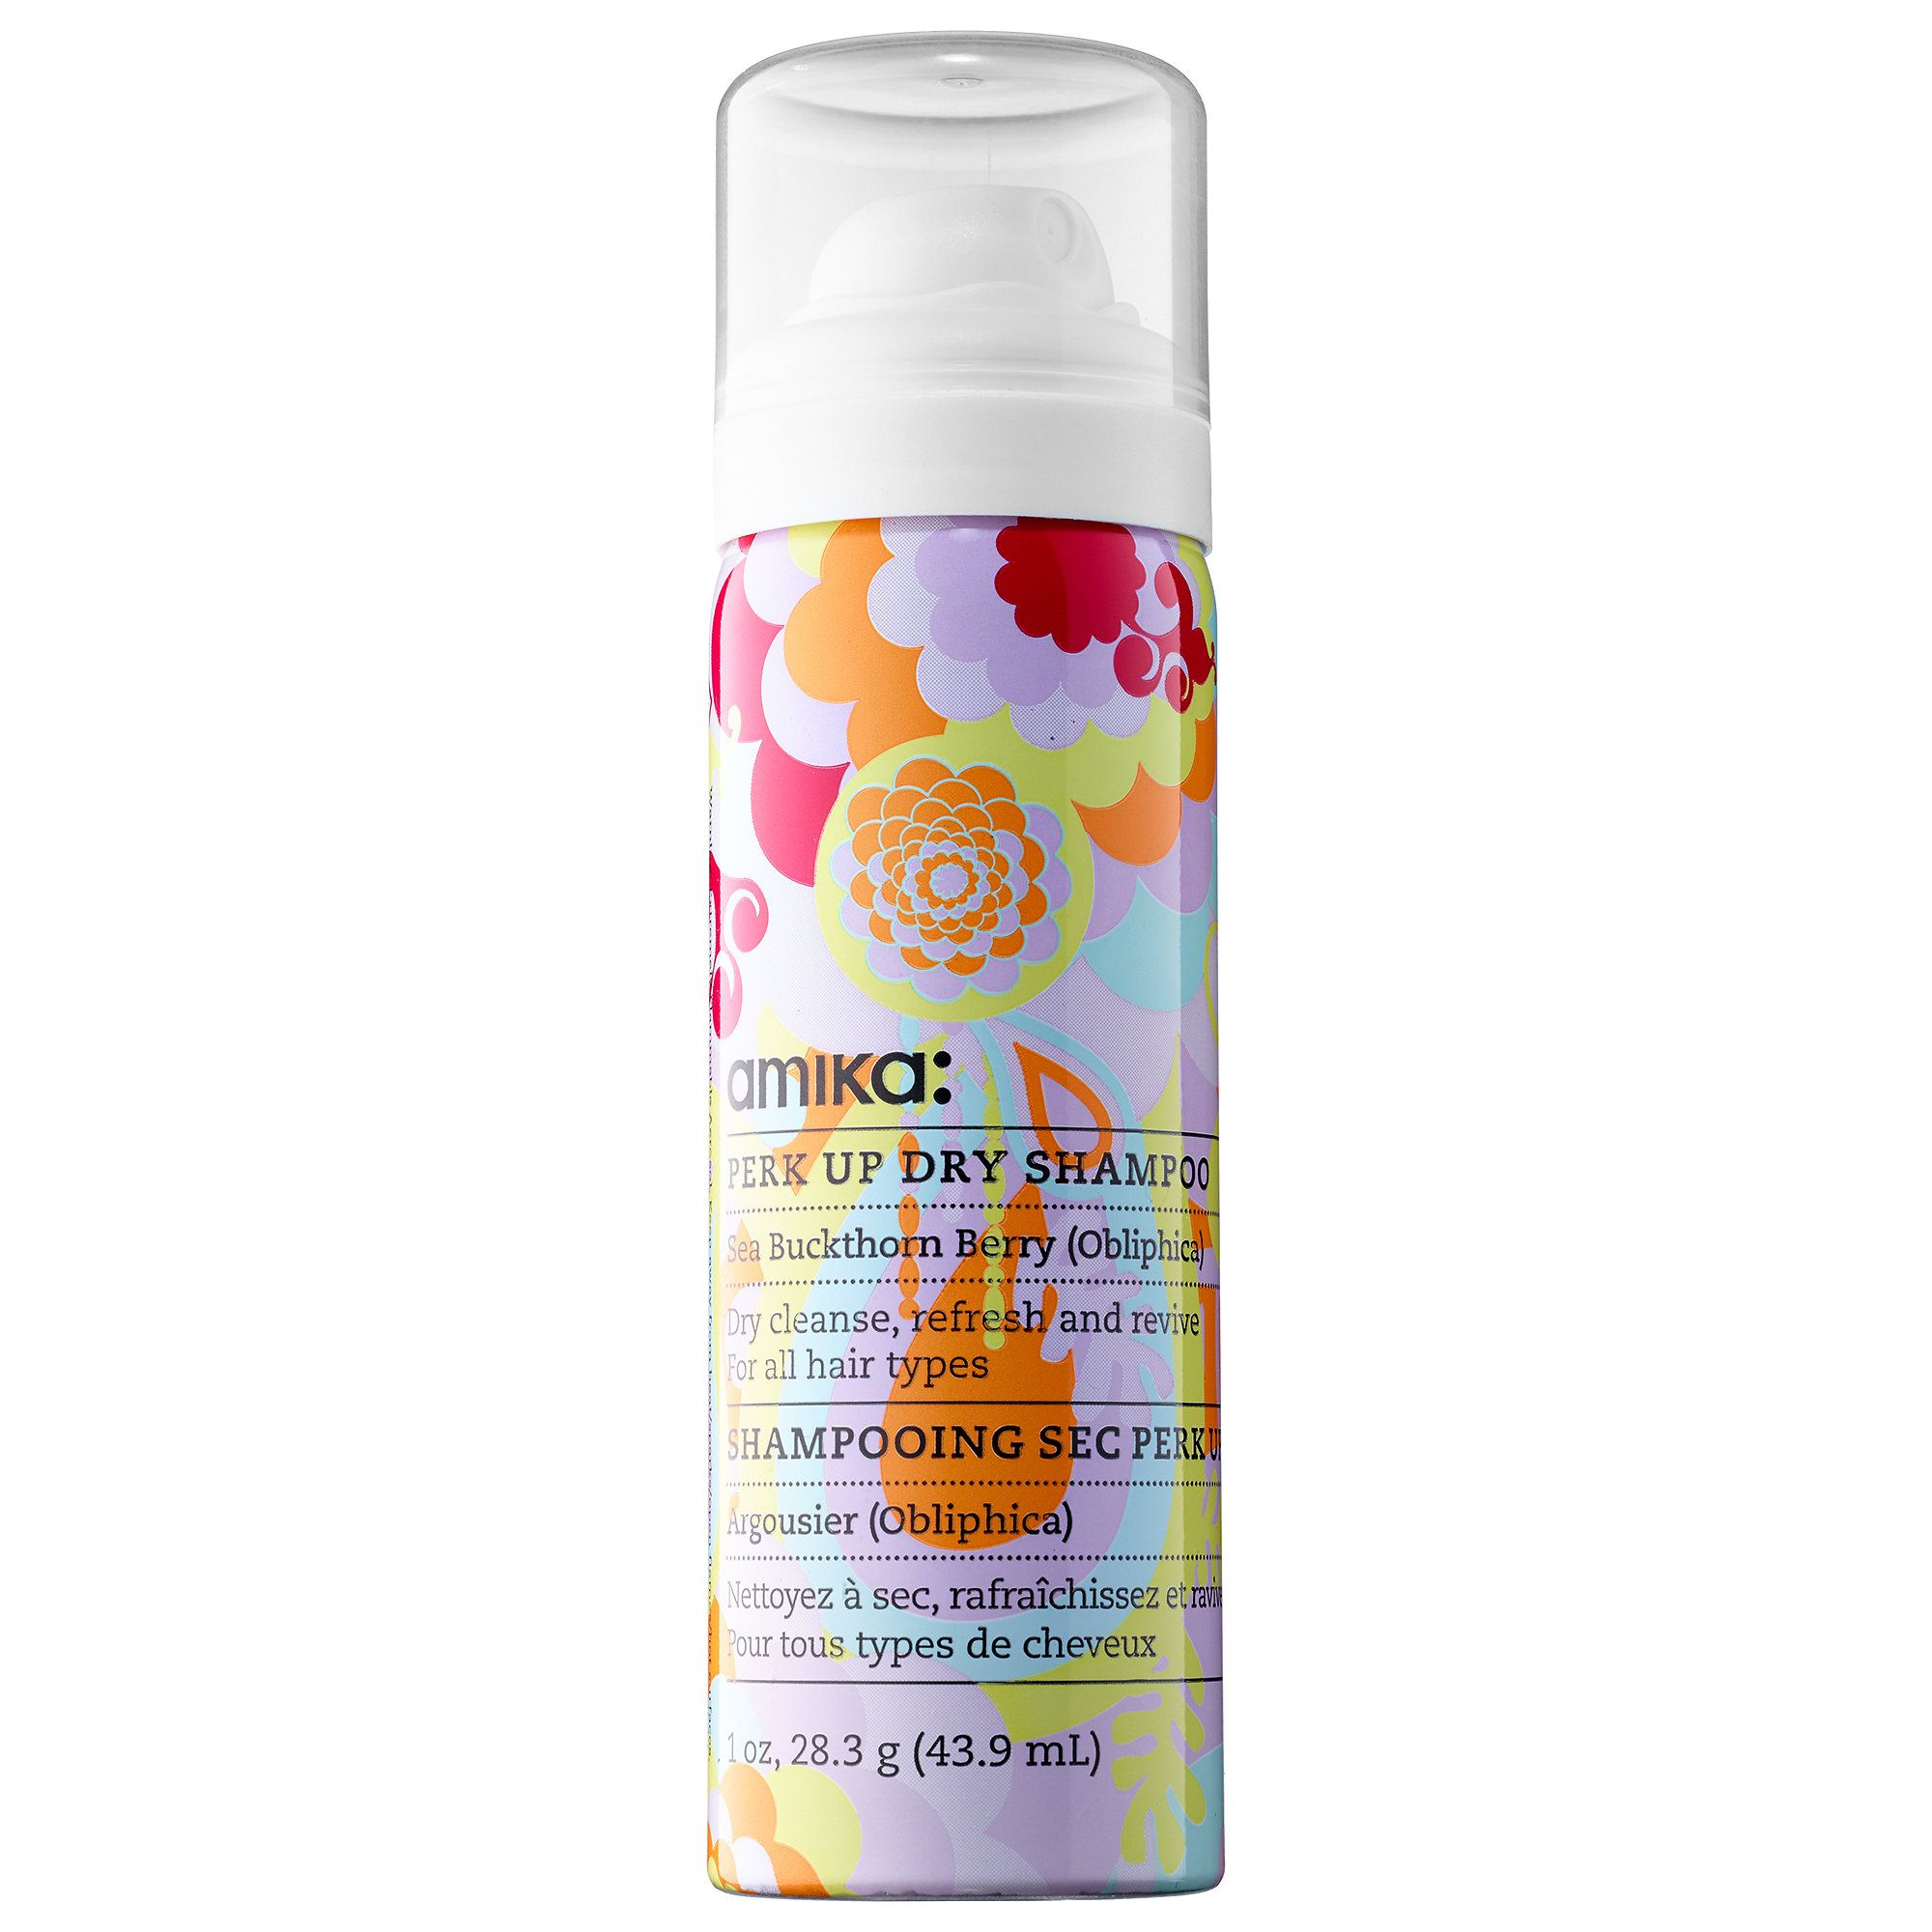 Don T Have Time To Wash Your Hair After The Gym The Amika Perk Up Dry Shampoo Contains The Lightweight Natur Amika Dry Shampoo Dry Shampoo Amika Hair Products